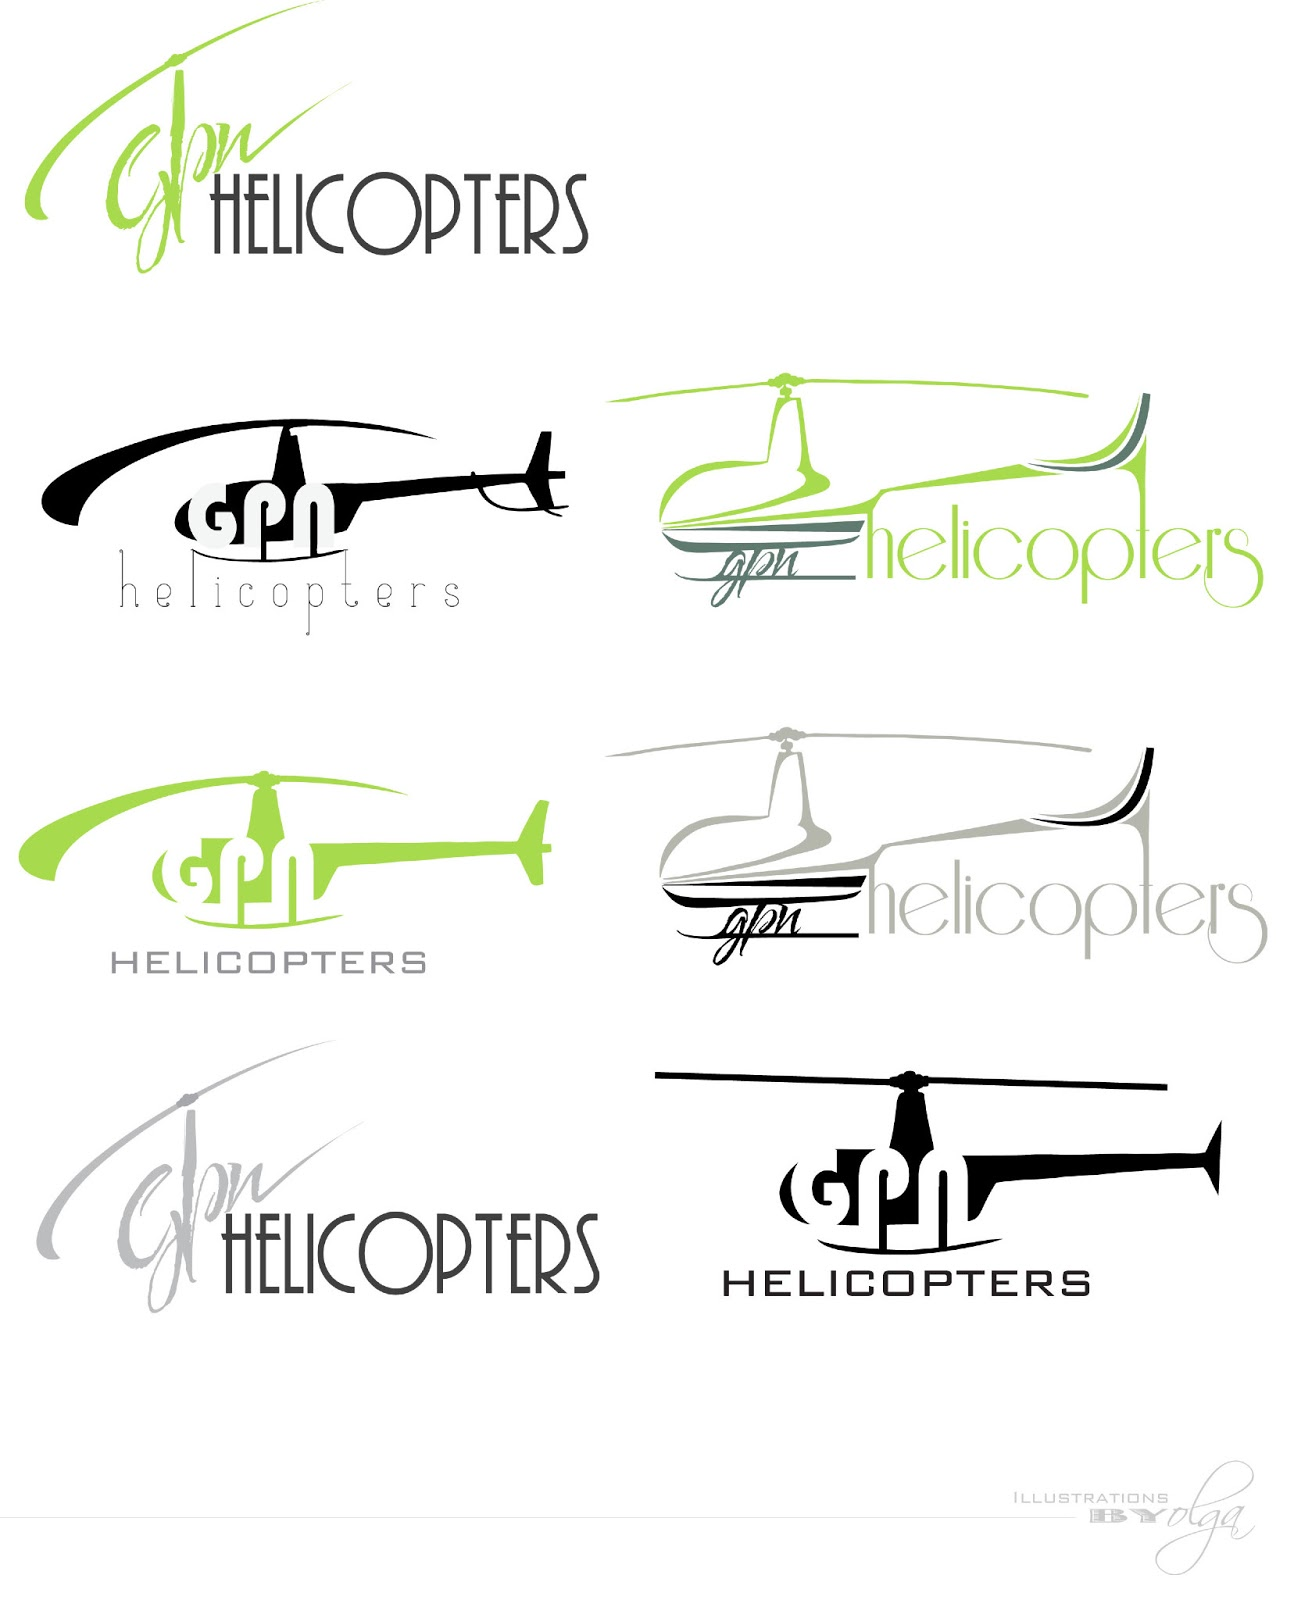 illustrations by olga gpn helicopters logo design